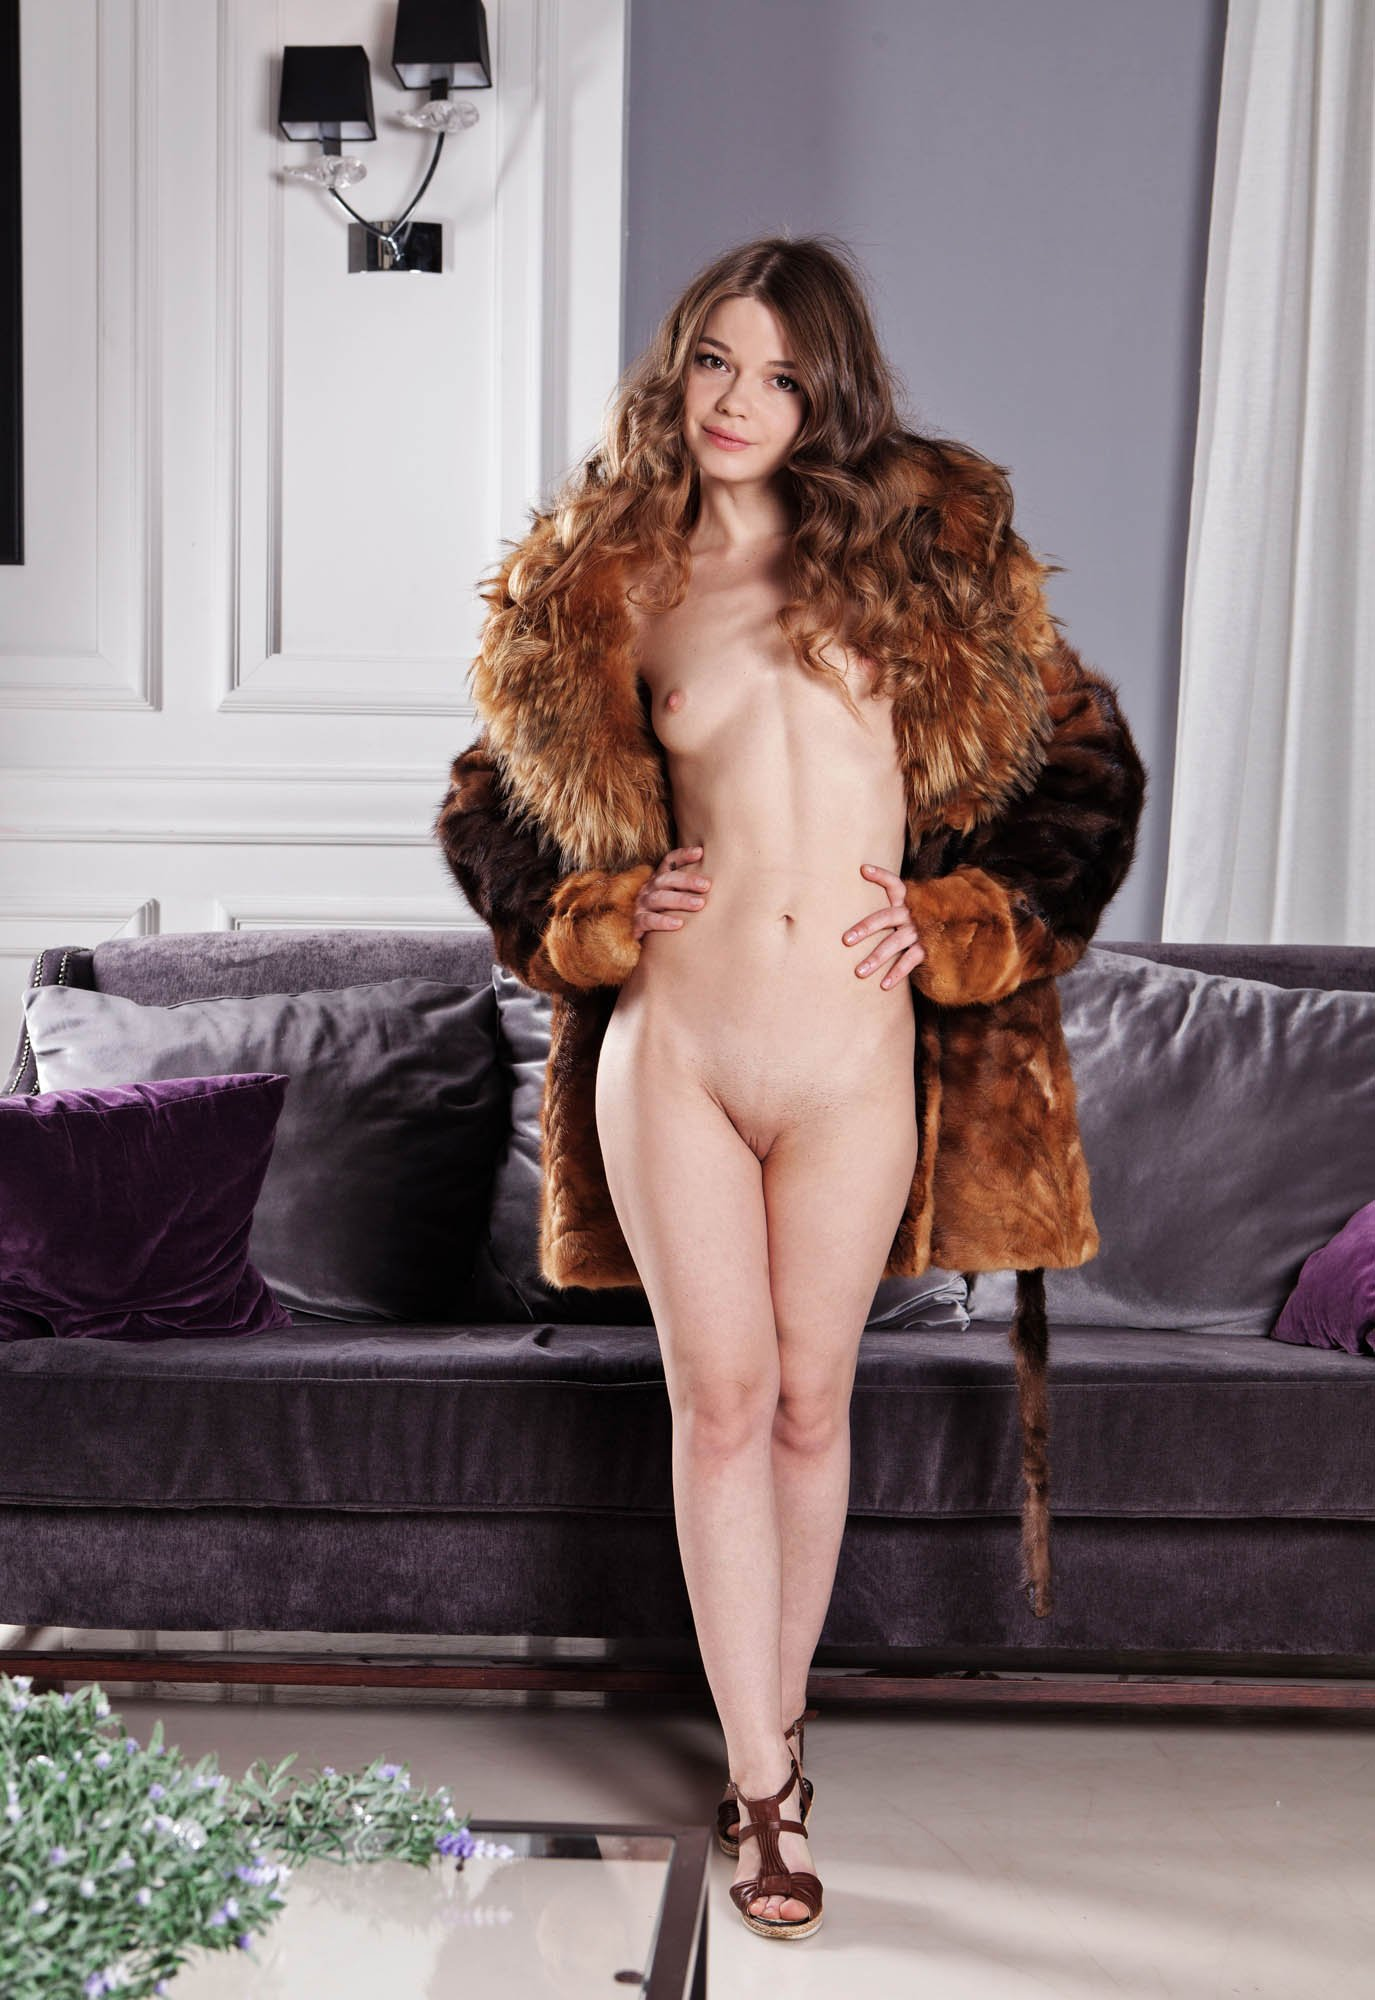 Girls with naked girl with a coat on cutie